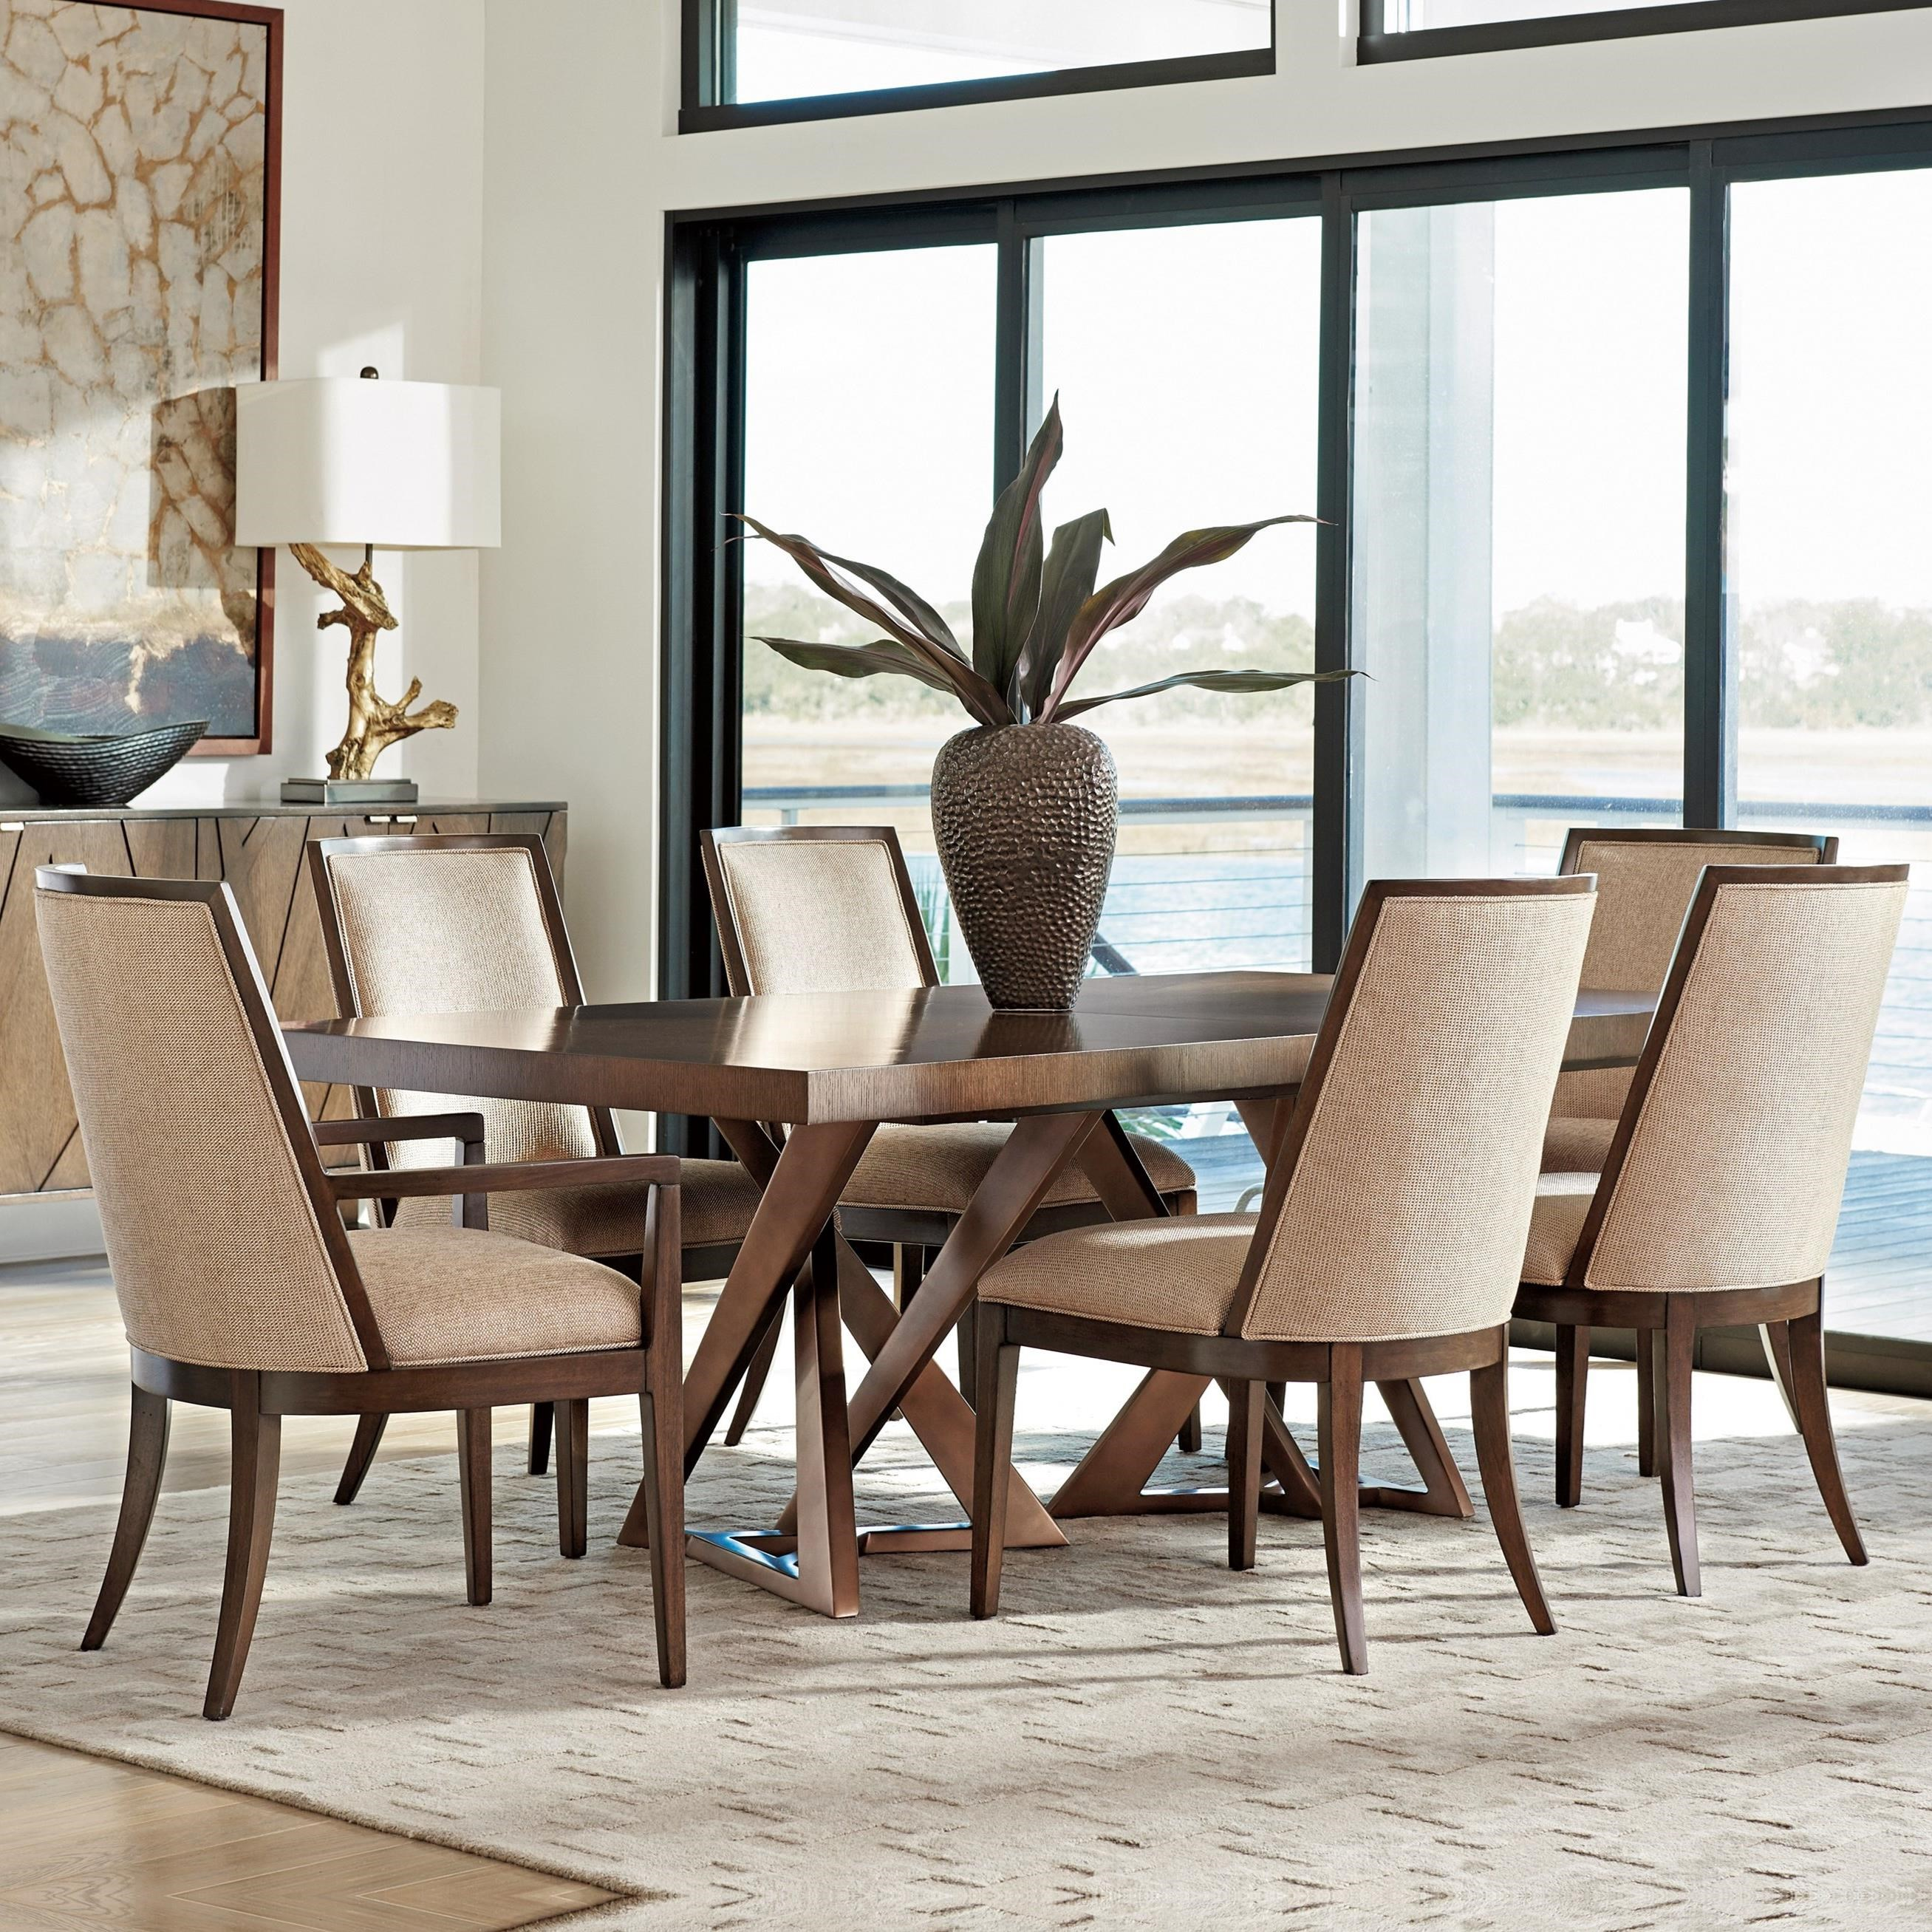 Lexington Zavala 7 Pc Dining Set - Item Number: 790-876C+4X790-880-01+2X790-881-01